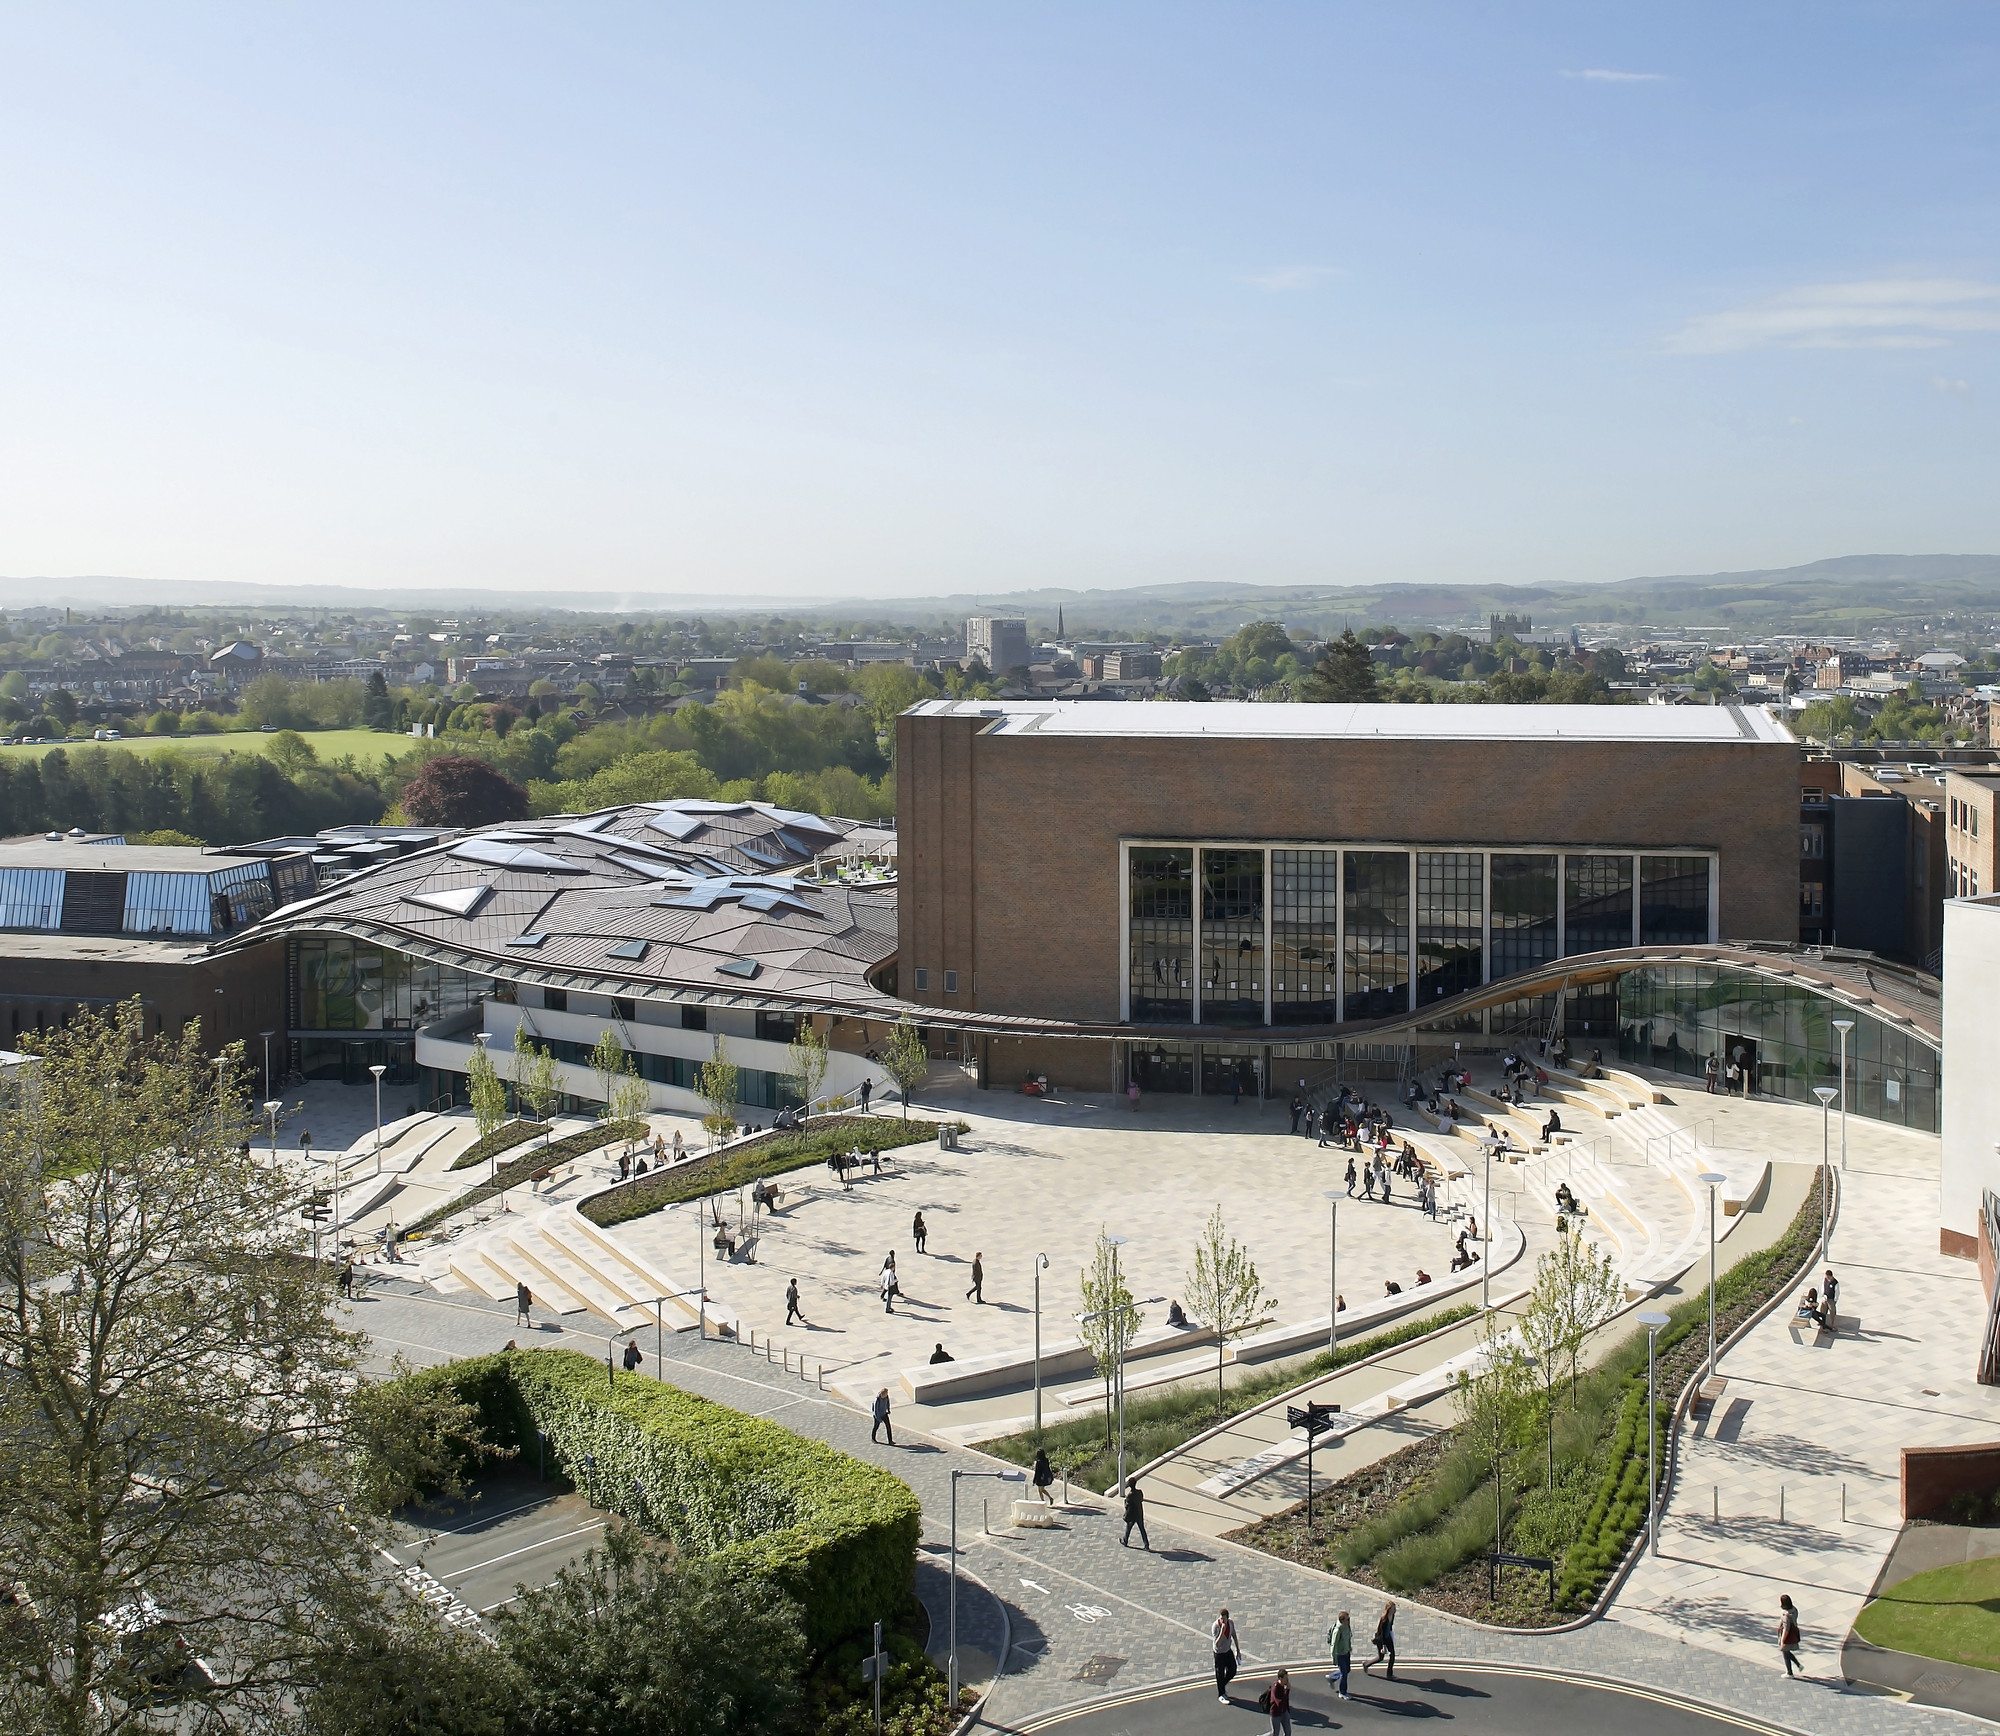 Higher education/research winner: University of Exeter: Forum Project, UK by Wilkinson Eyre Architects © Hufton + Crow